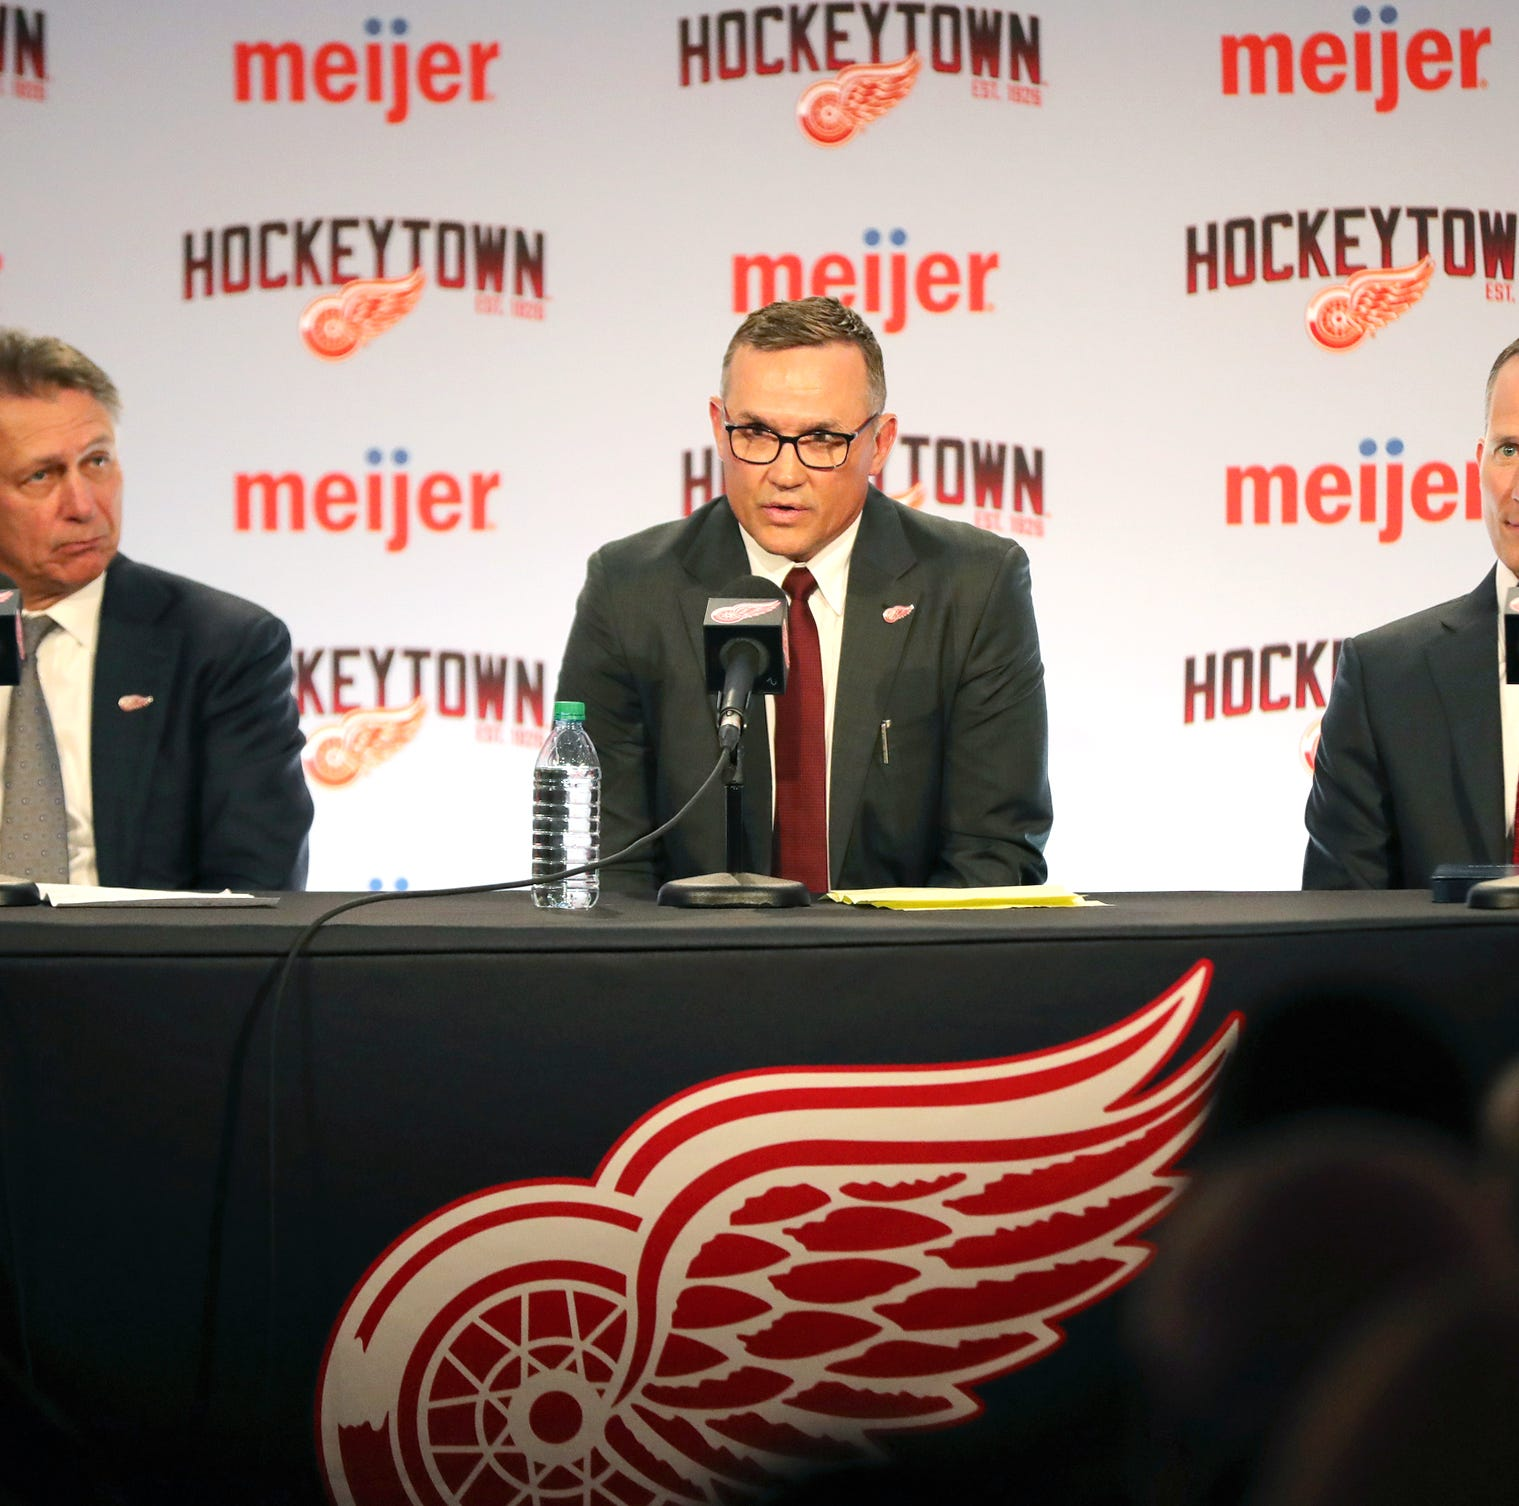 Timeline of Steve Yzerman's Detroit Red Wings hiring began last summer